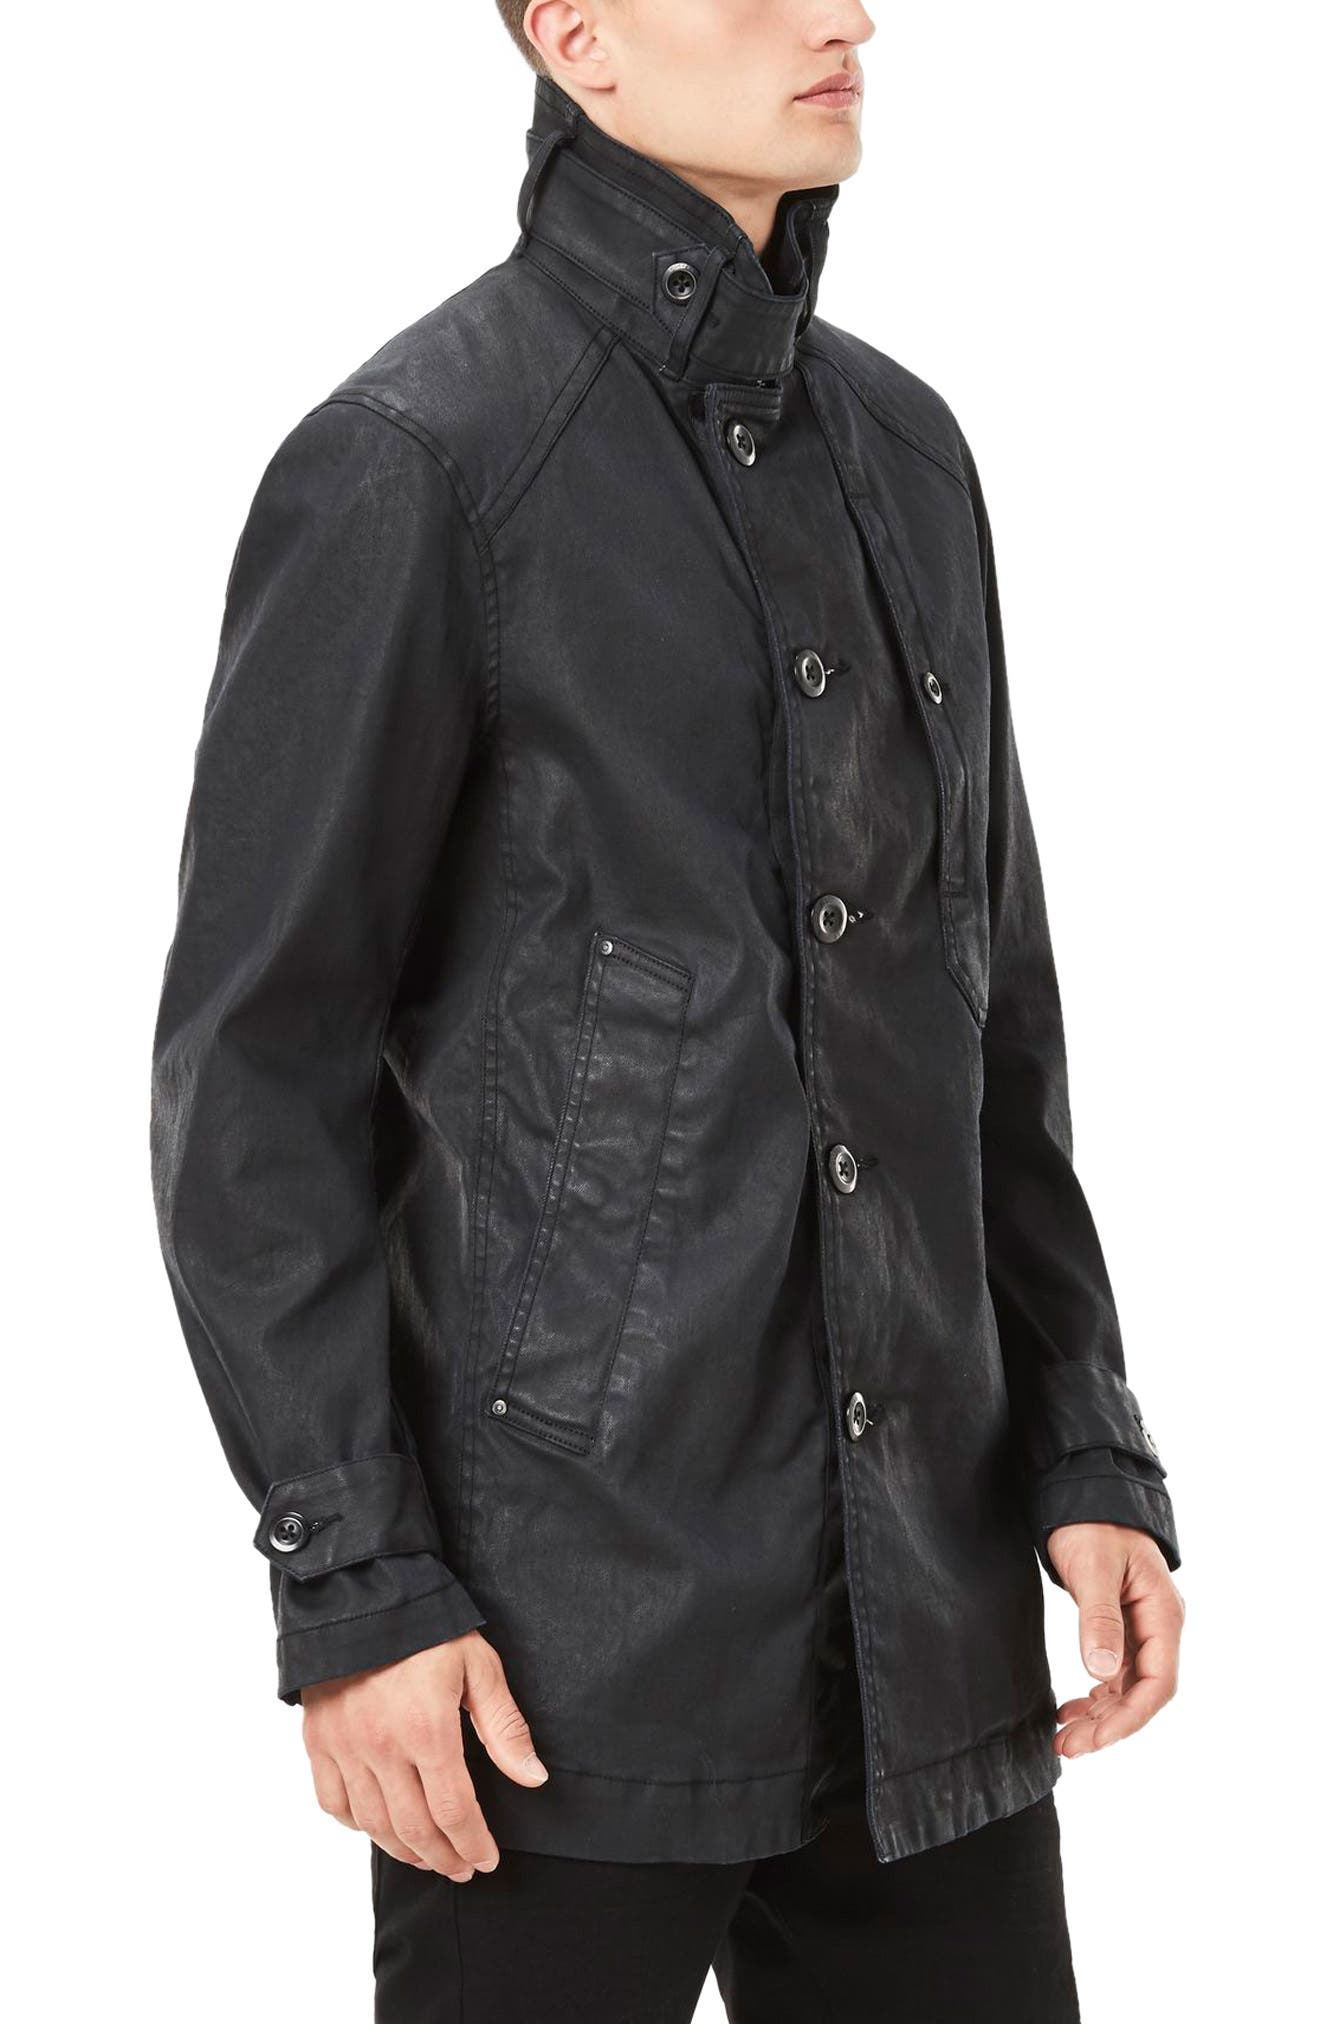 Garber Denim Trench Coat,                             Alternate thumbnail 3, color,                             005